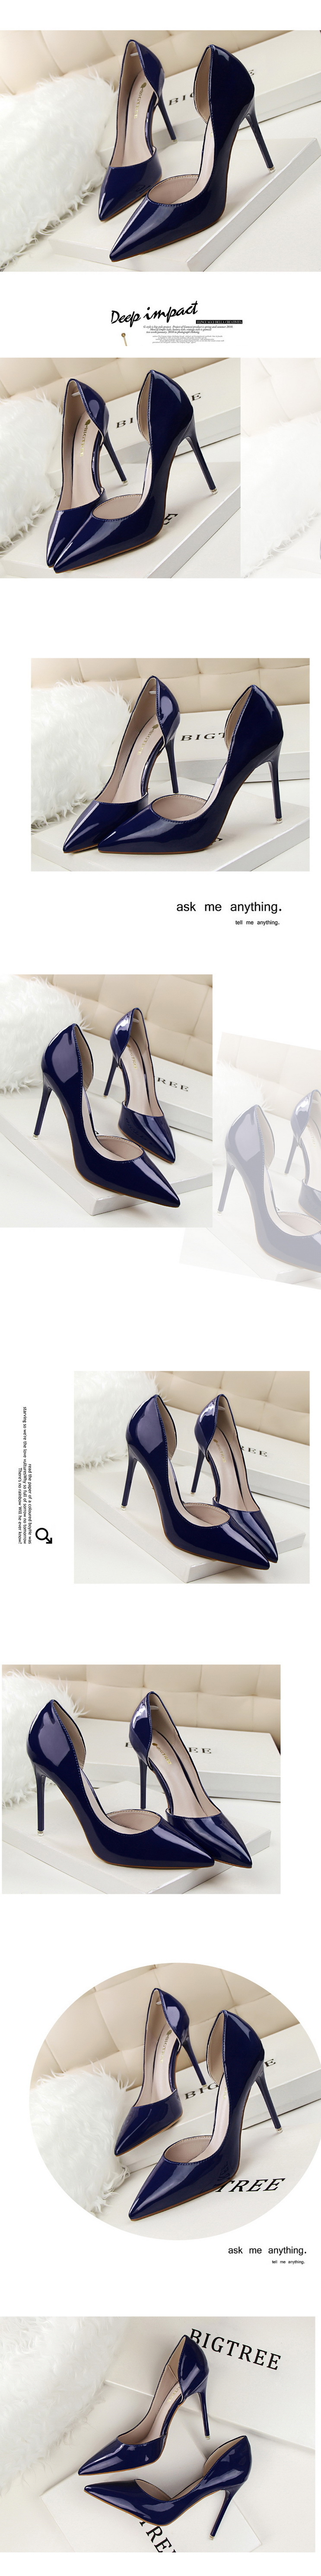 Women/'s High Heels d/'Orsay Pumps Patent Leather Pointed Shoes US Size 4~10.5 G01